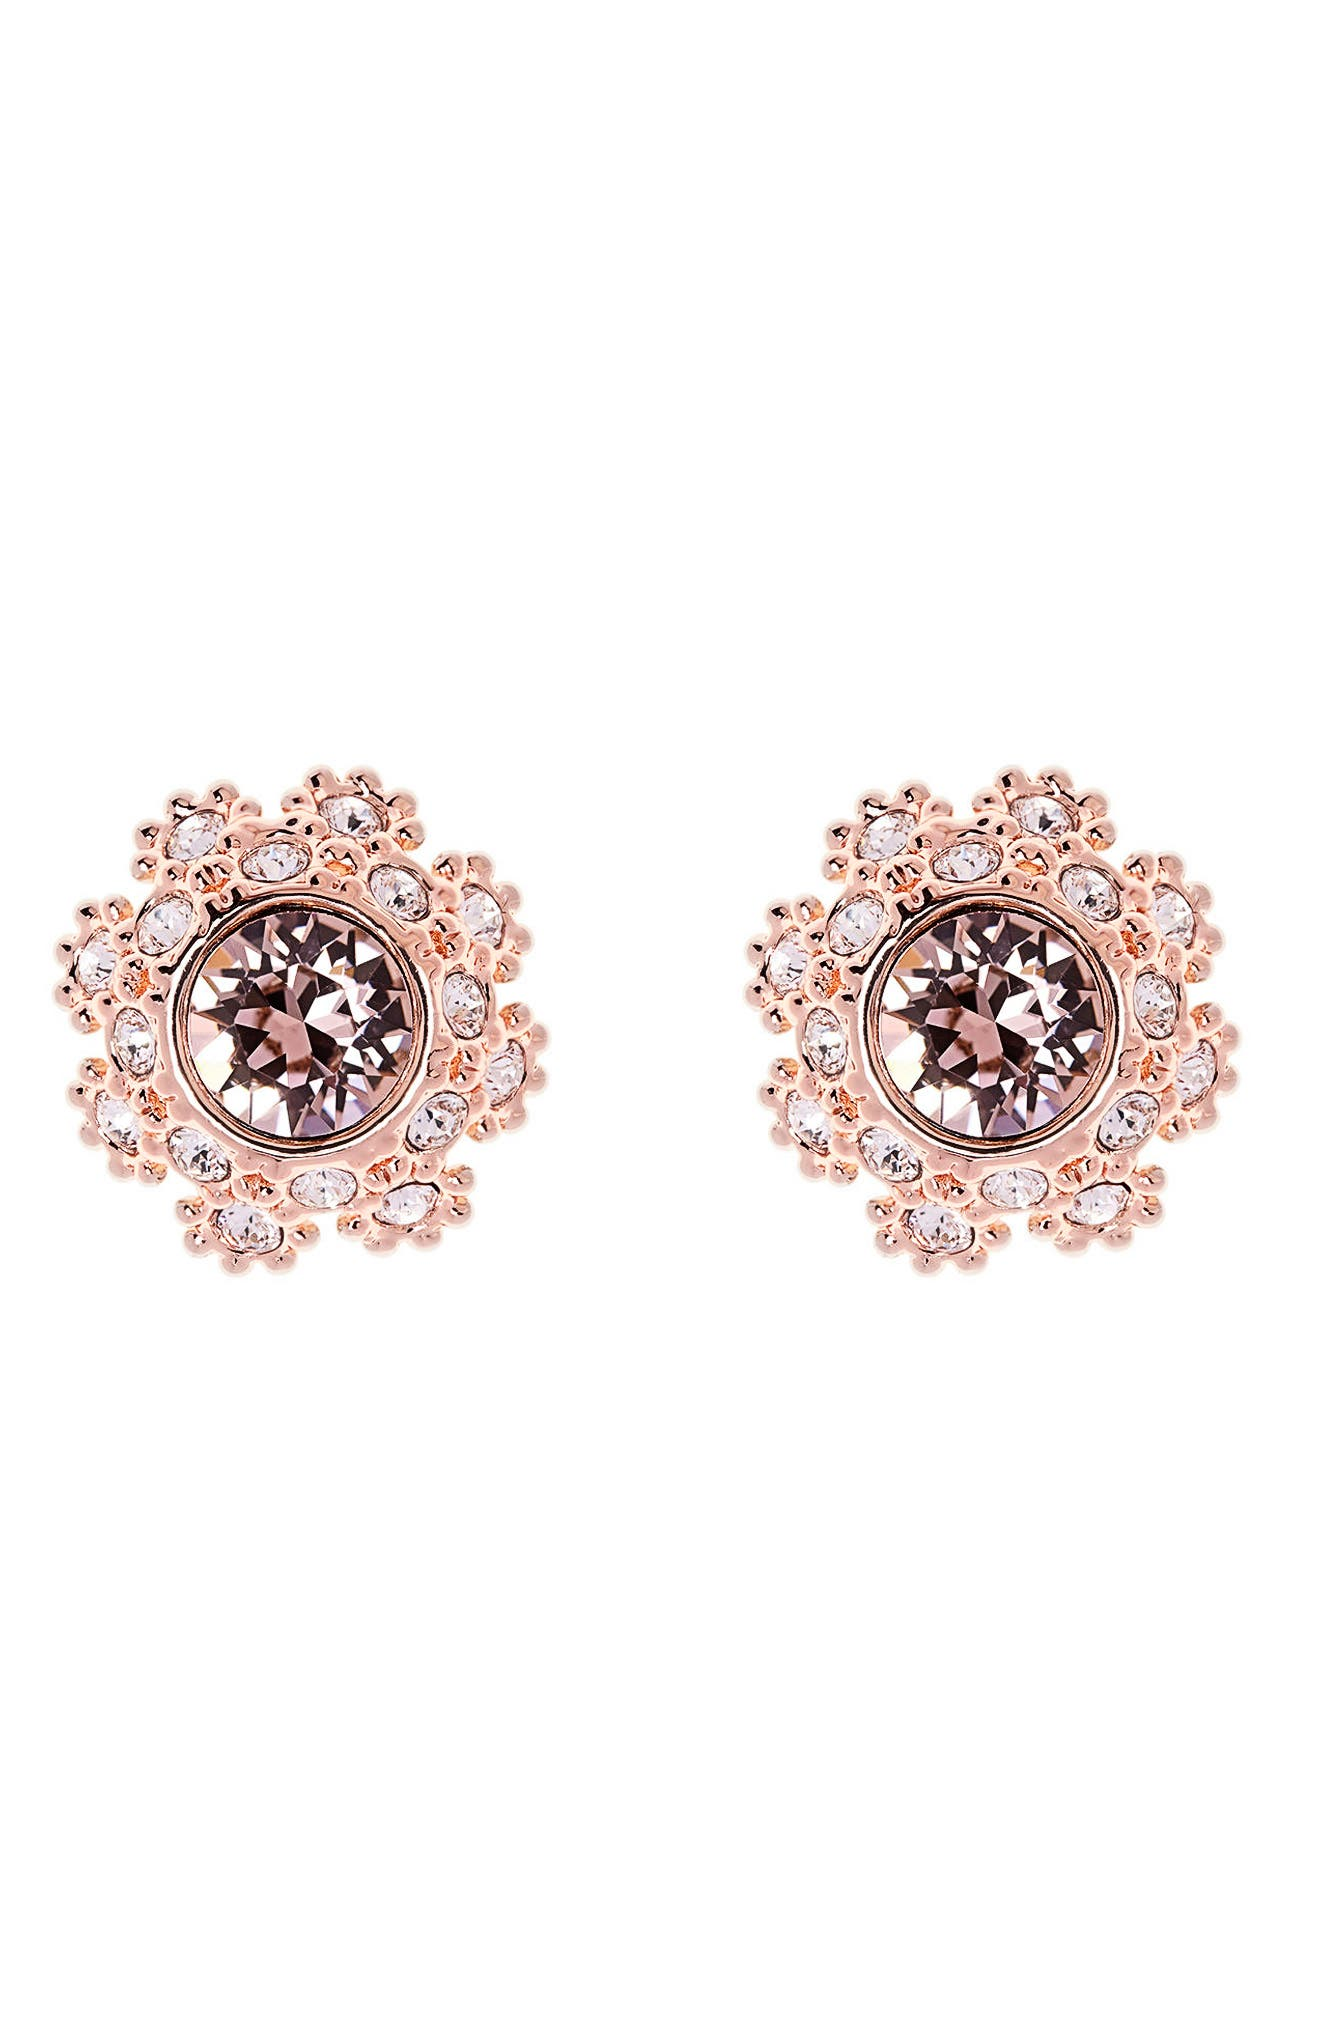 Crystal Daisy Lace Stud Earrings,                         Main,                         color, Pink